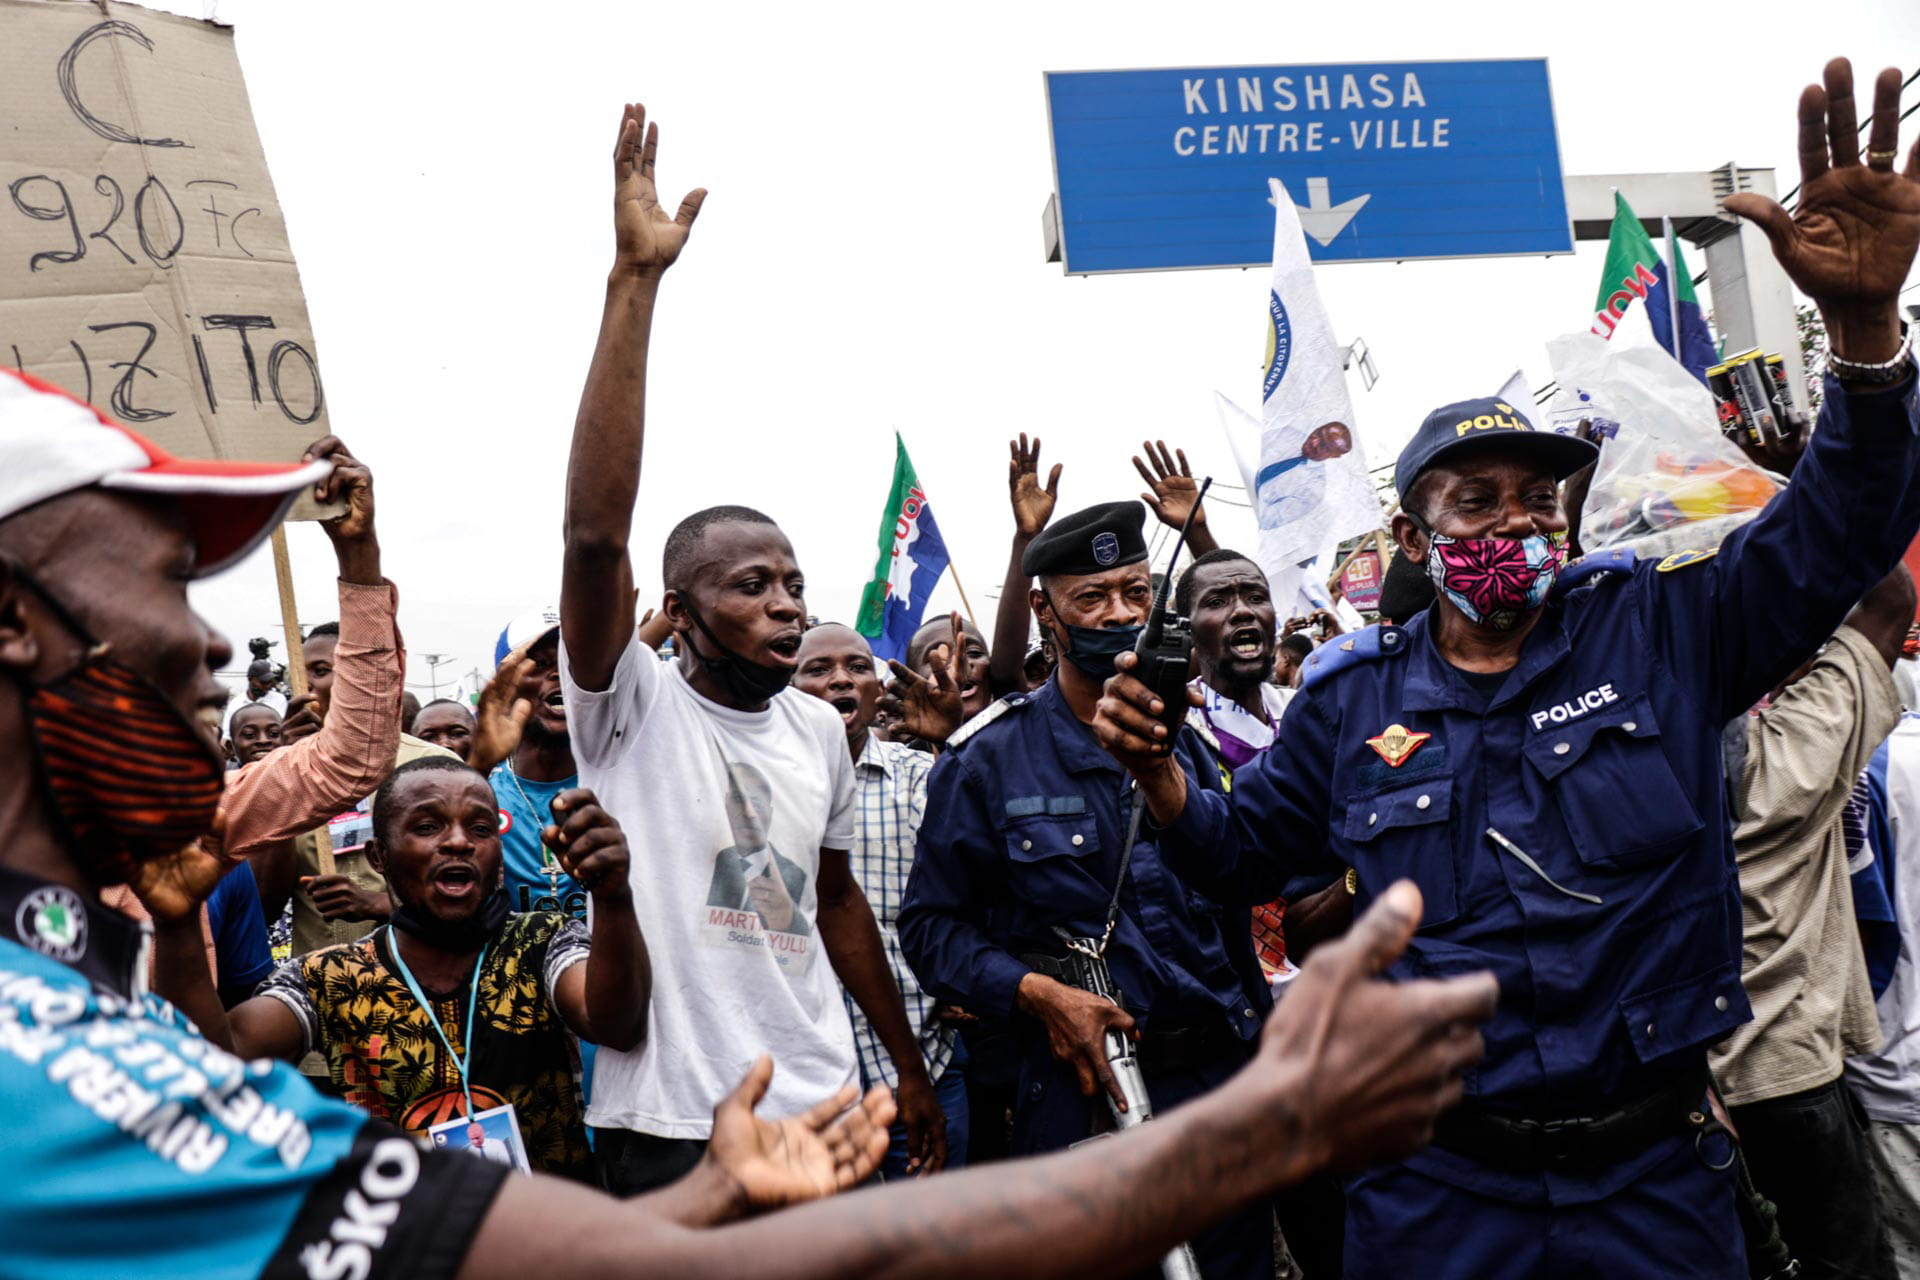 Kinshasa, DRC, August 23th 2020. Police did not attempt to disperse the crowds of supporters who lined the streets waiting to catch a glimpse of Lamuka opposition party leader Martin Fayulu as he returned to Kinshasa this week after being stuck in the United States for five months due to coronavirus travel restrictions. © Justin Makangara for Fondation Carmignac